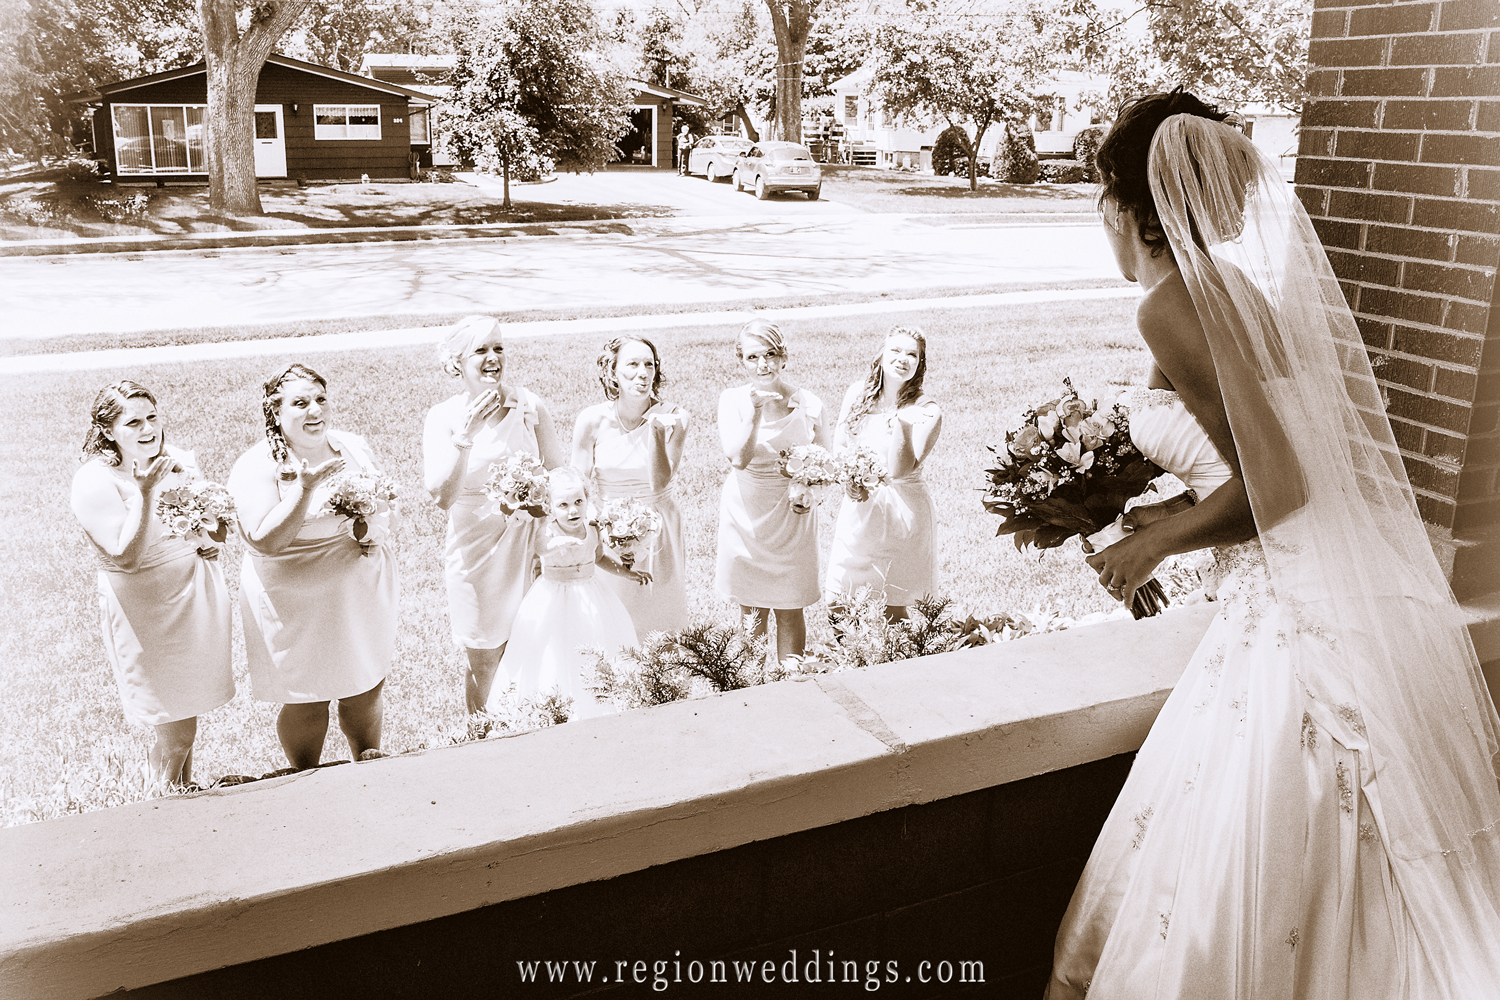 The bridesmaids blow kisses toward the bride after seeing her for the first time in her wedding dress.